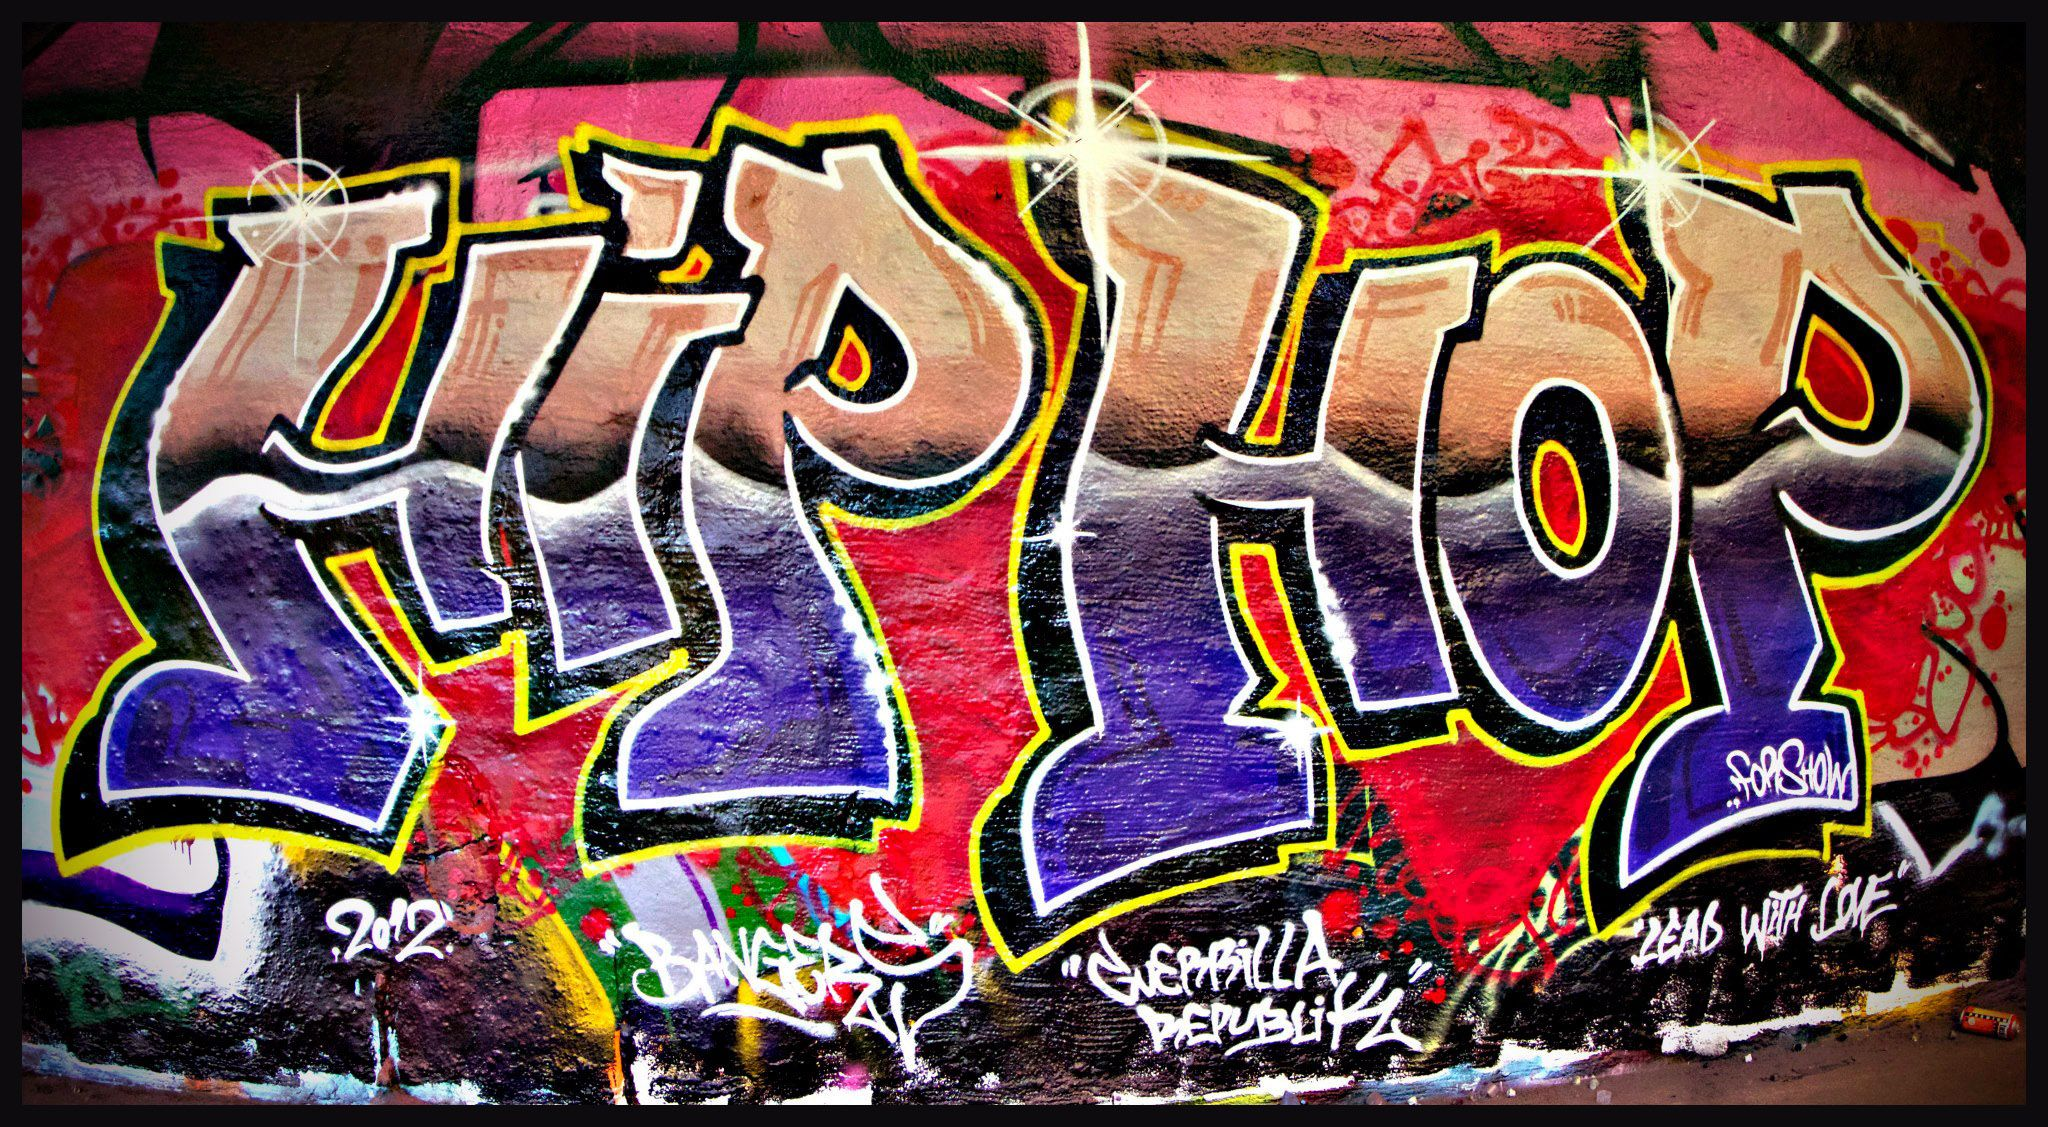 Graffiti Hip Hop Team Building in Barcelona